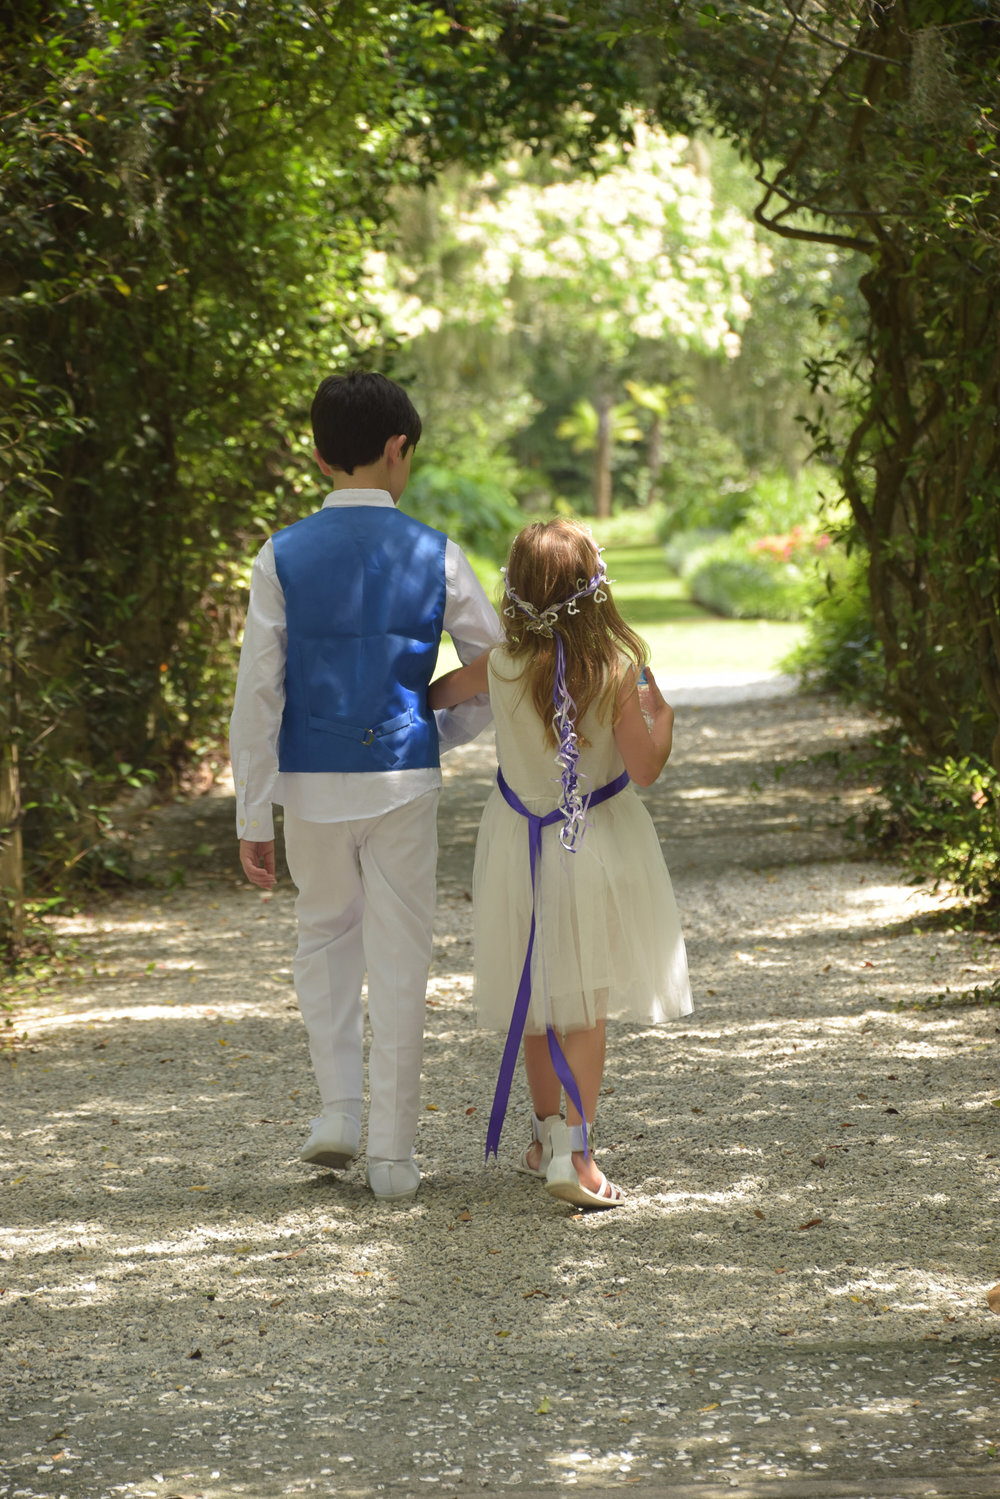 Flower girl and ring bearer walk.